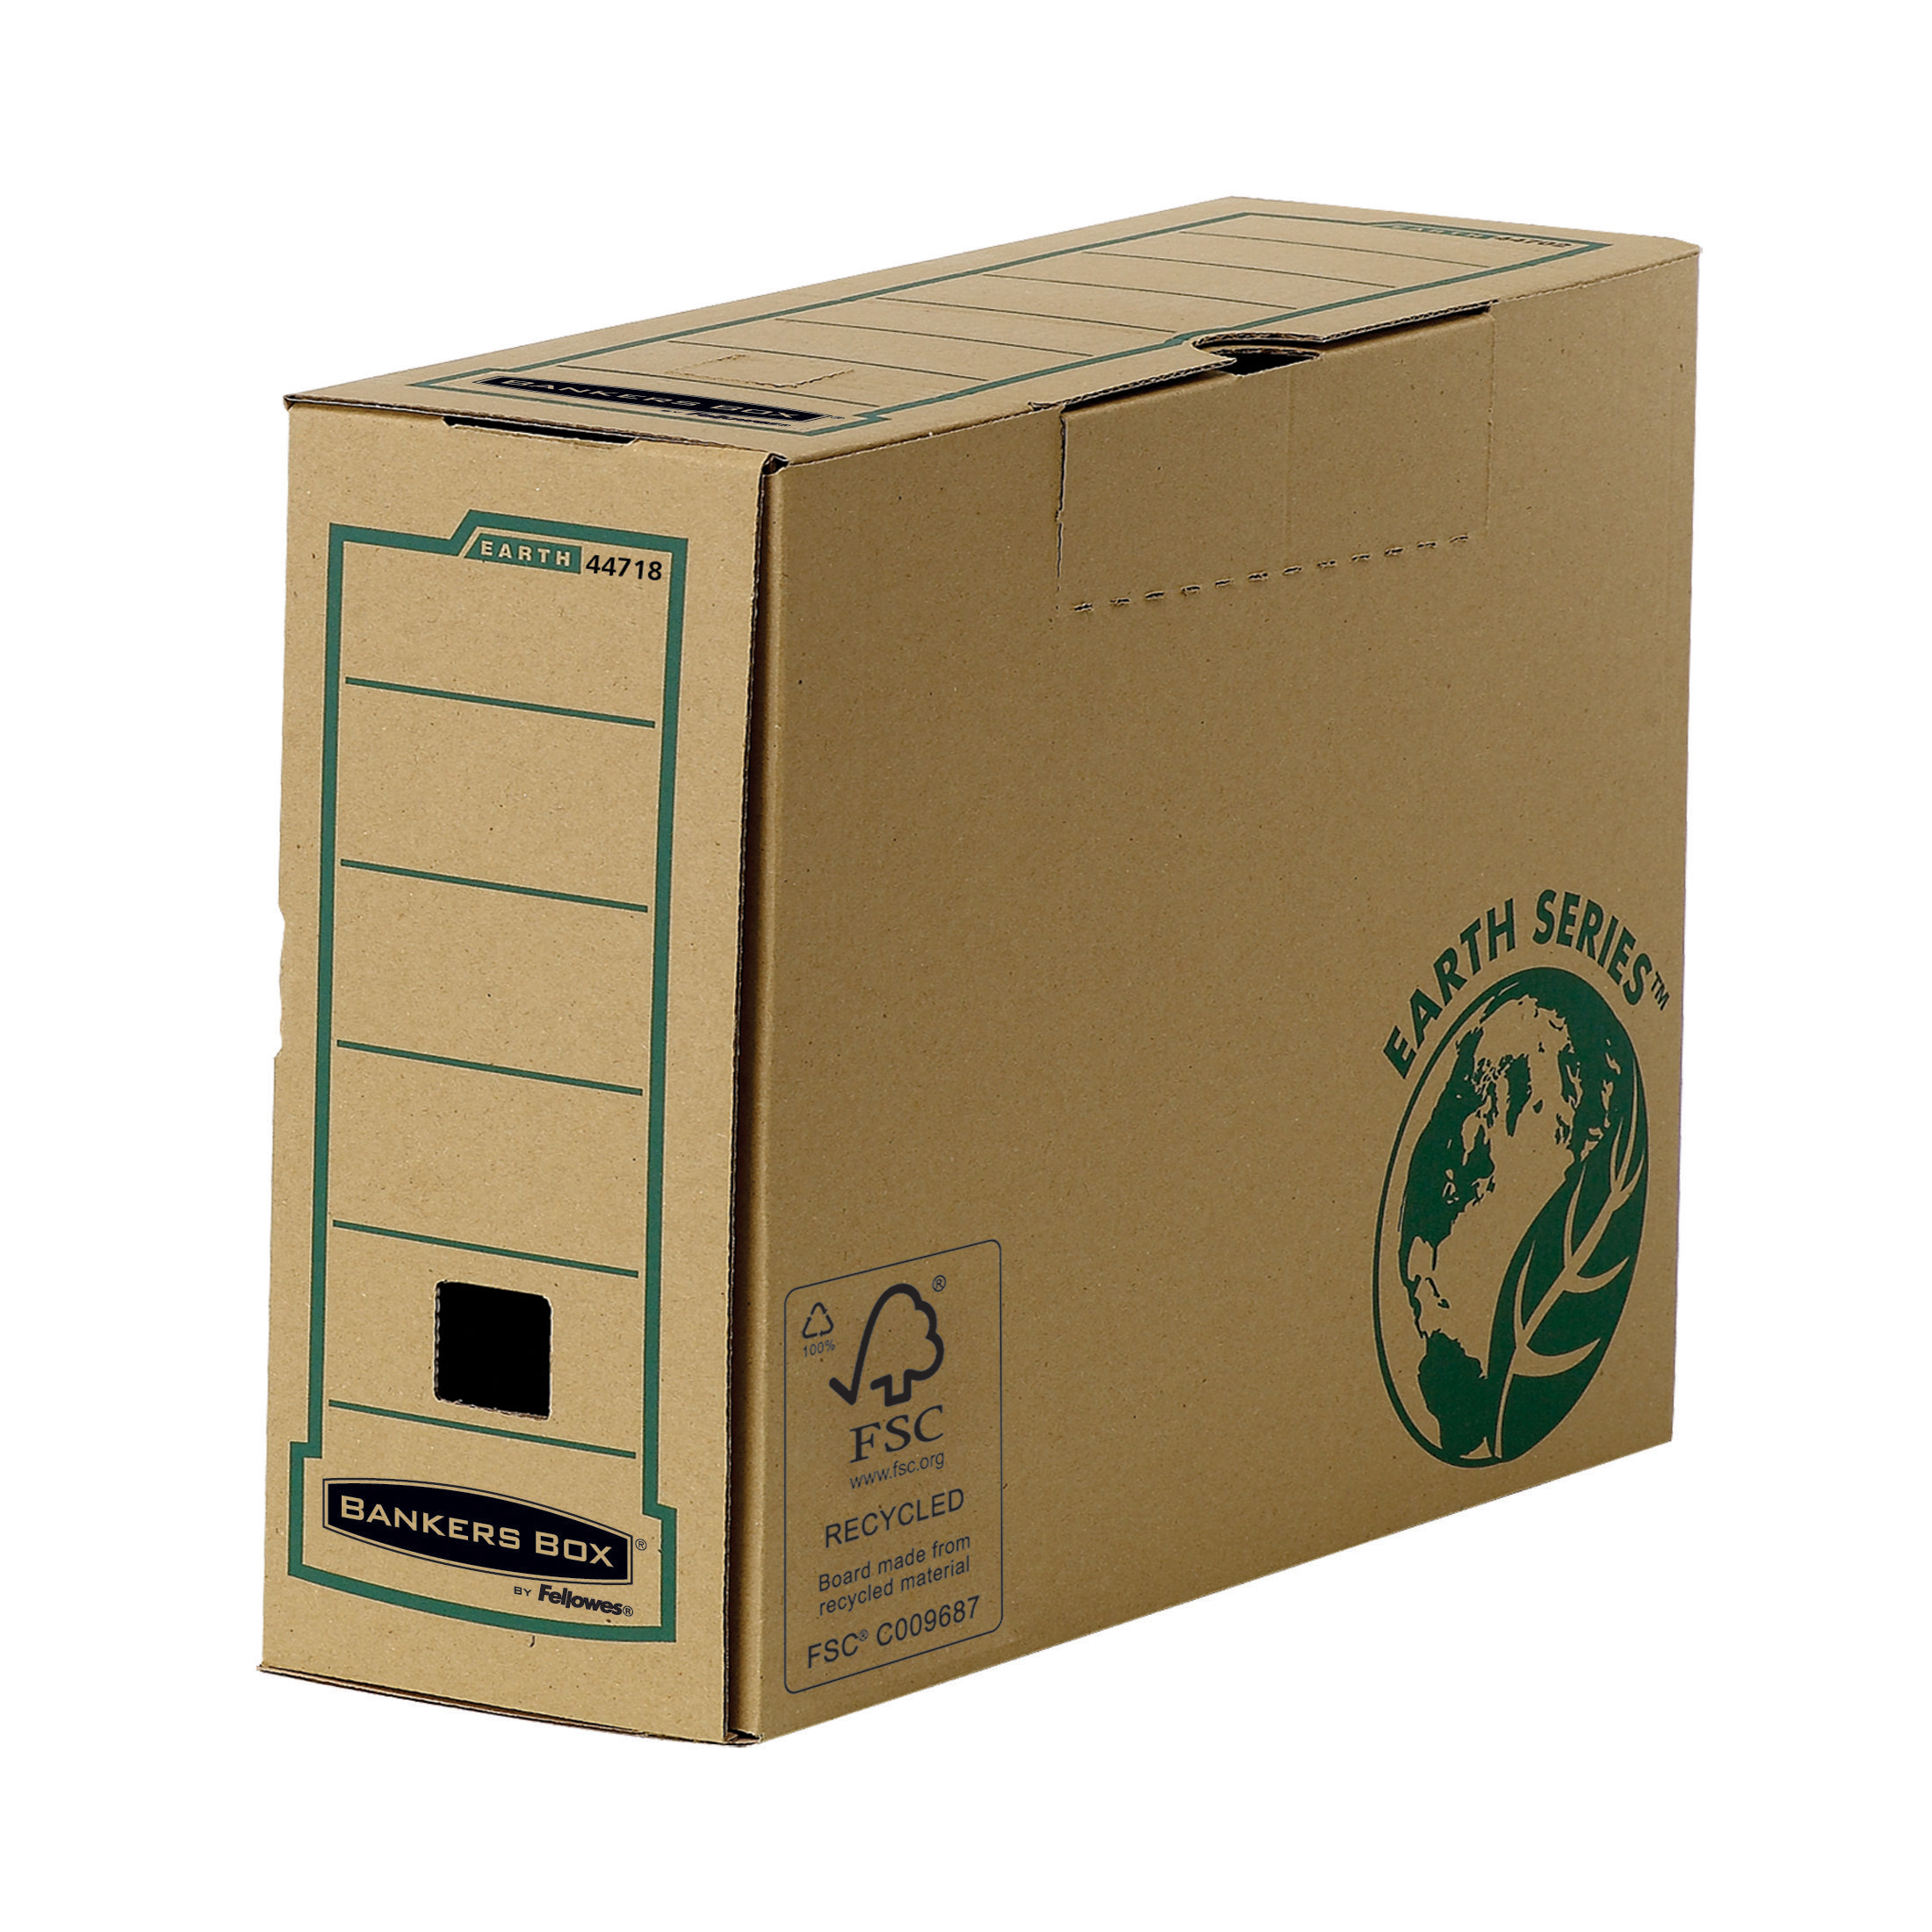 Transfer Files Bankers Box by Fellowes Earth Srs Transfer Bx File Rcyc FSC Tab Lock Lid W100mm A4 Ref 4470201 Pack 20